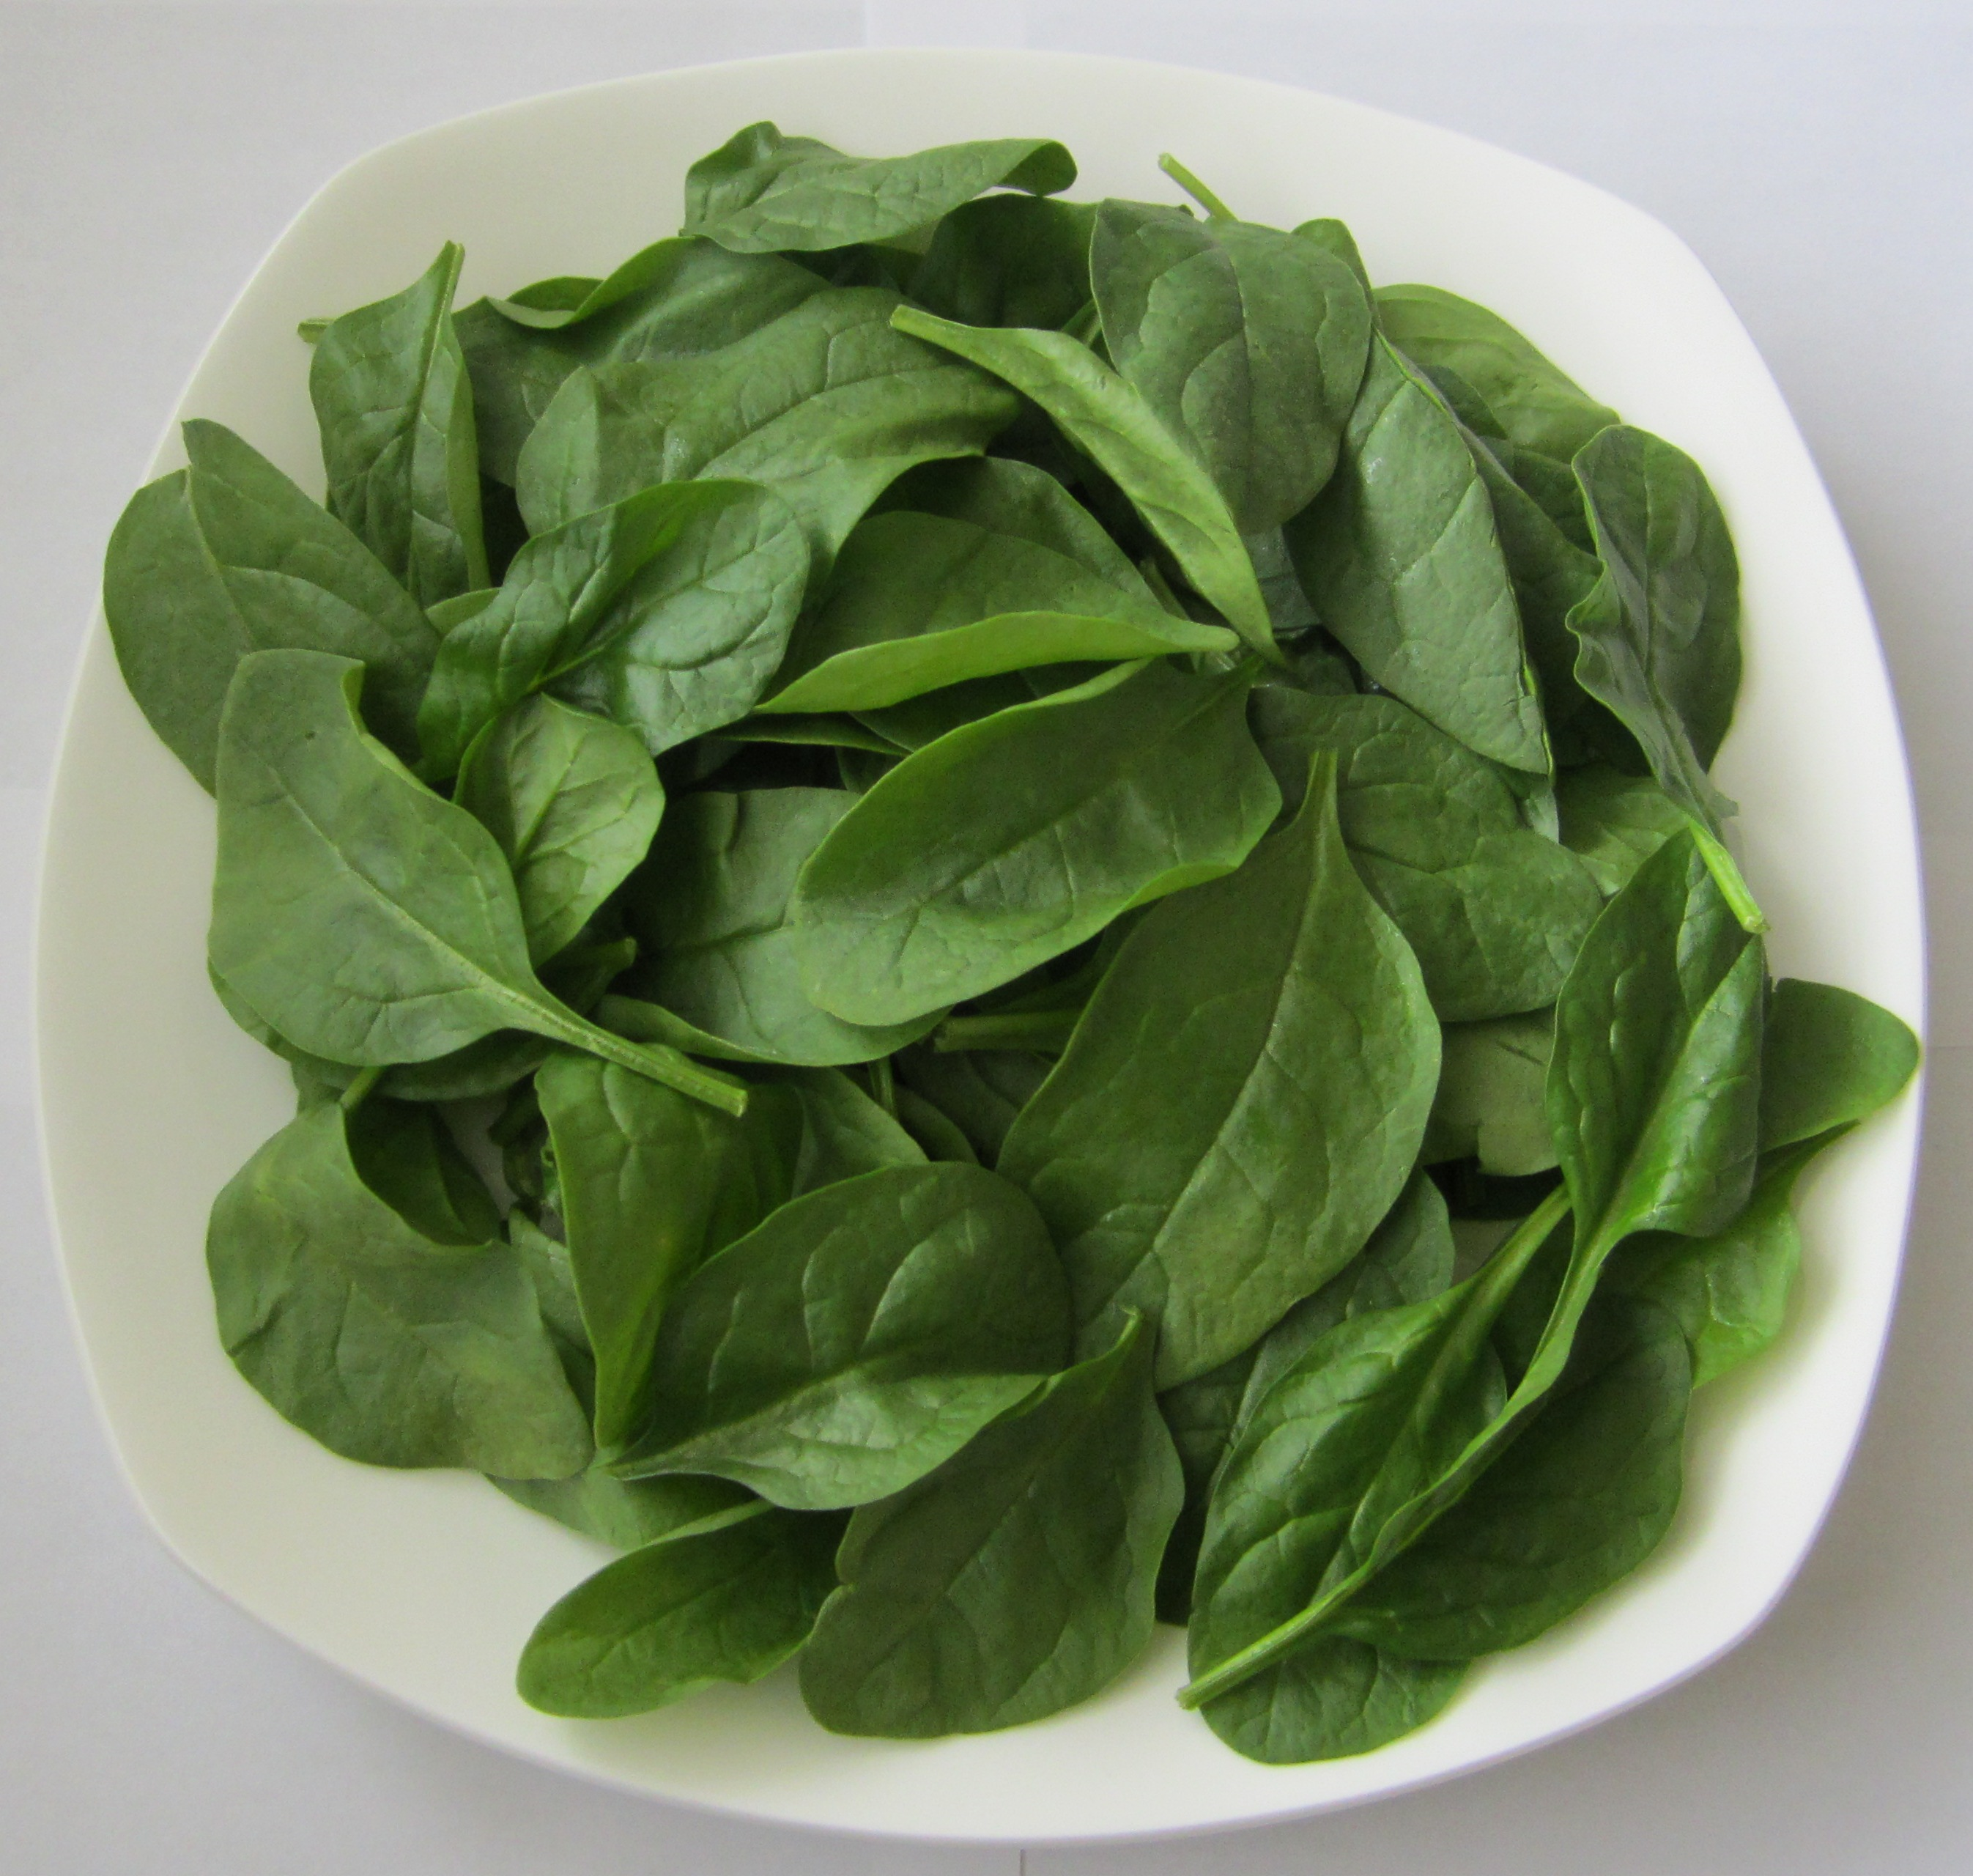 Here are some key benefits of drinking fresh spinach juice: